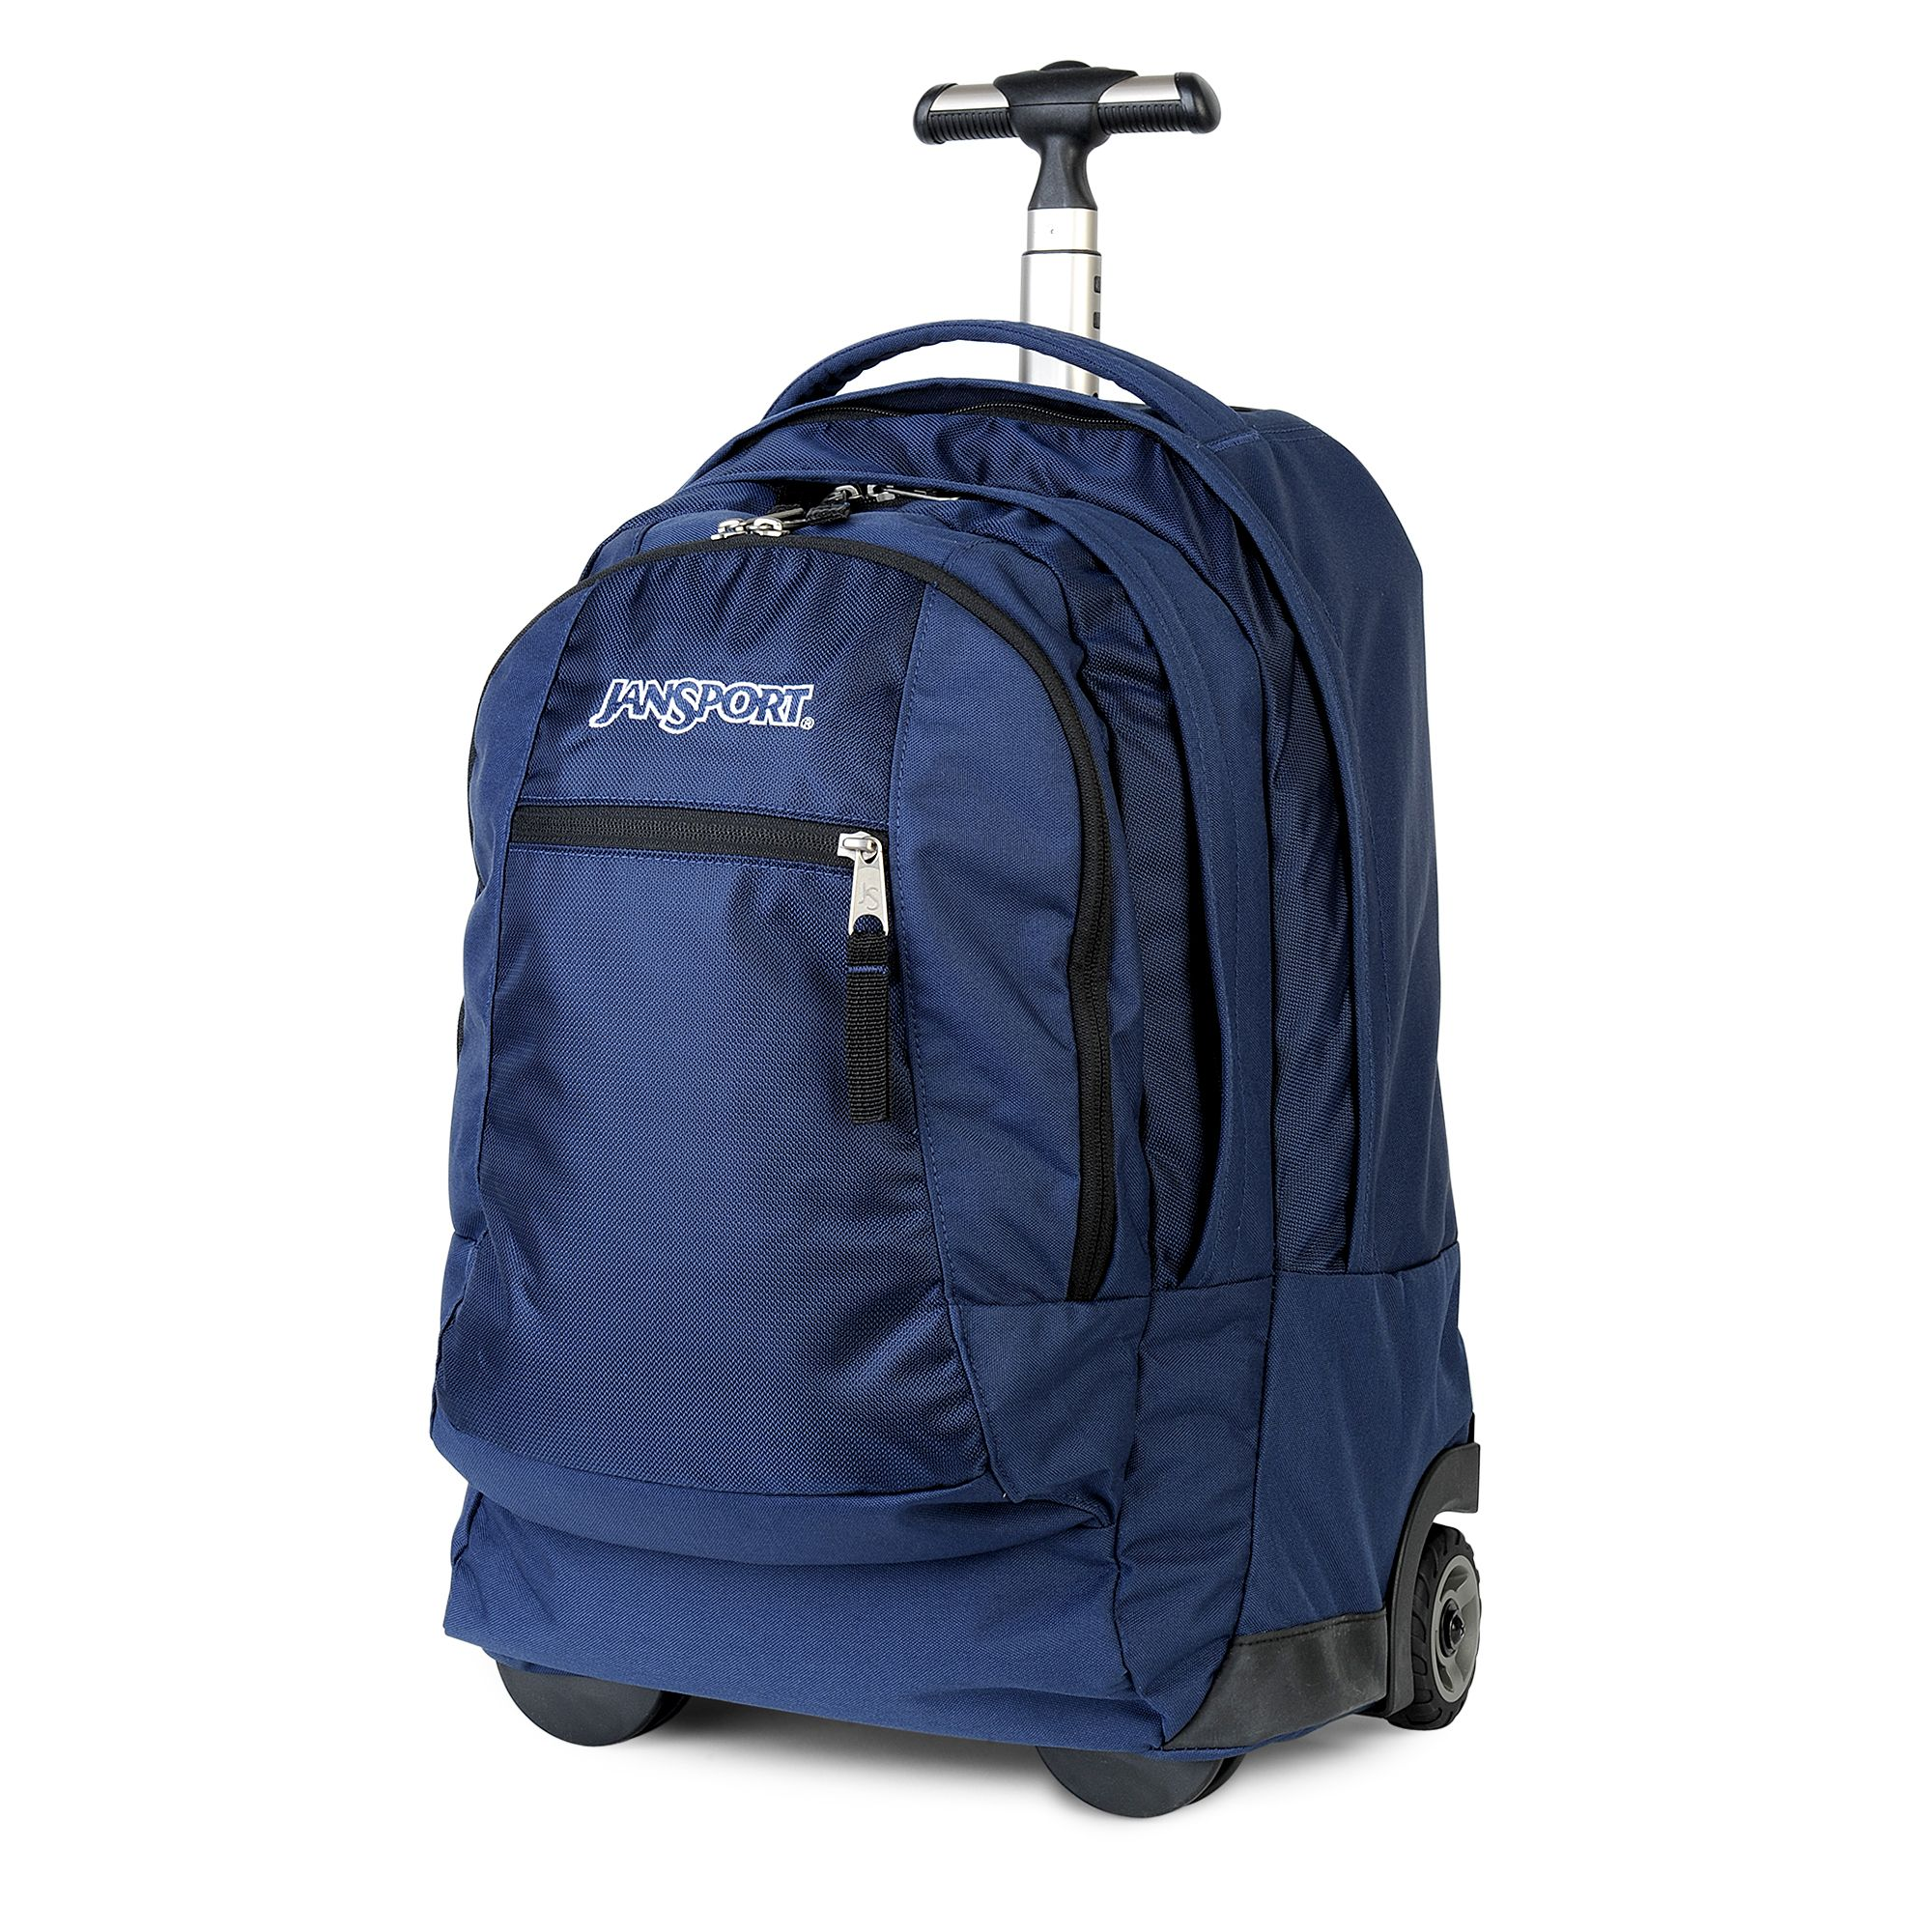 Jansport Backpack With Wheels - Crazy Backpacks